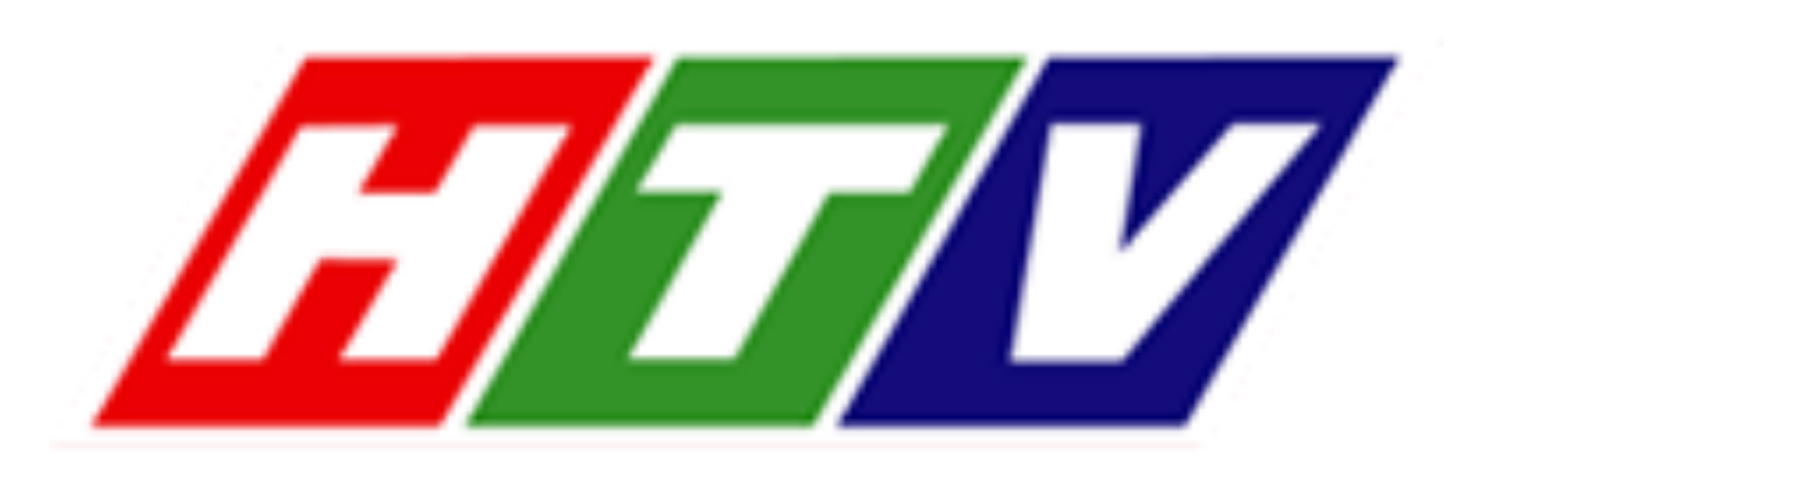 HTV2 (2010-present).png